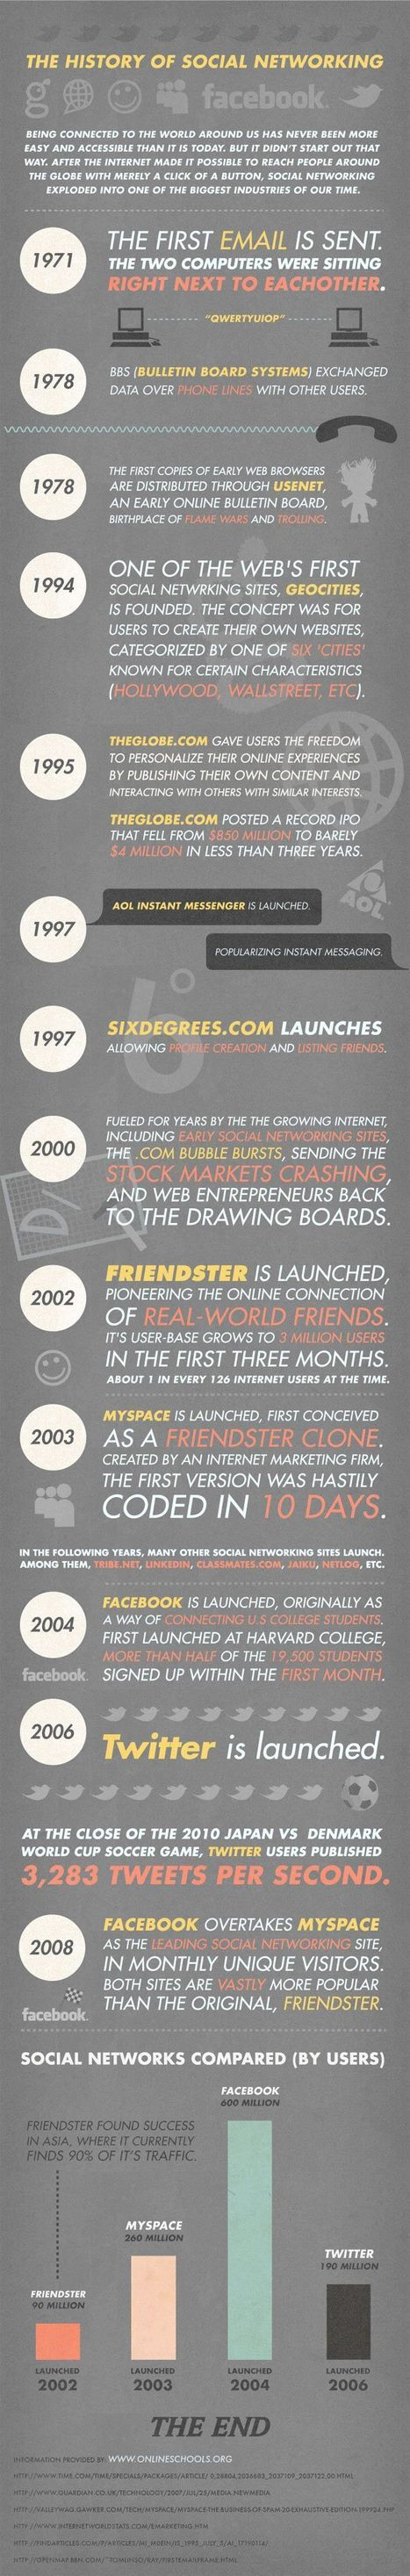 The History of Social Media [INFOGRAPHIC] | digital citizenship | Scoop.it